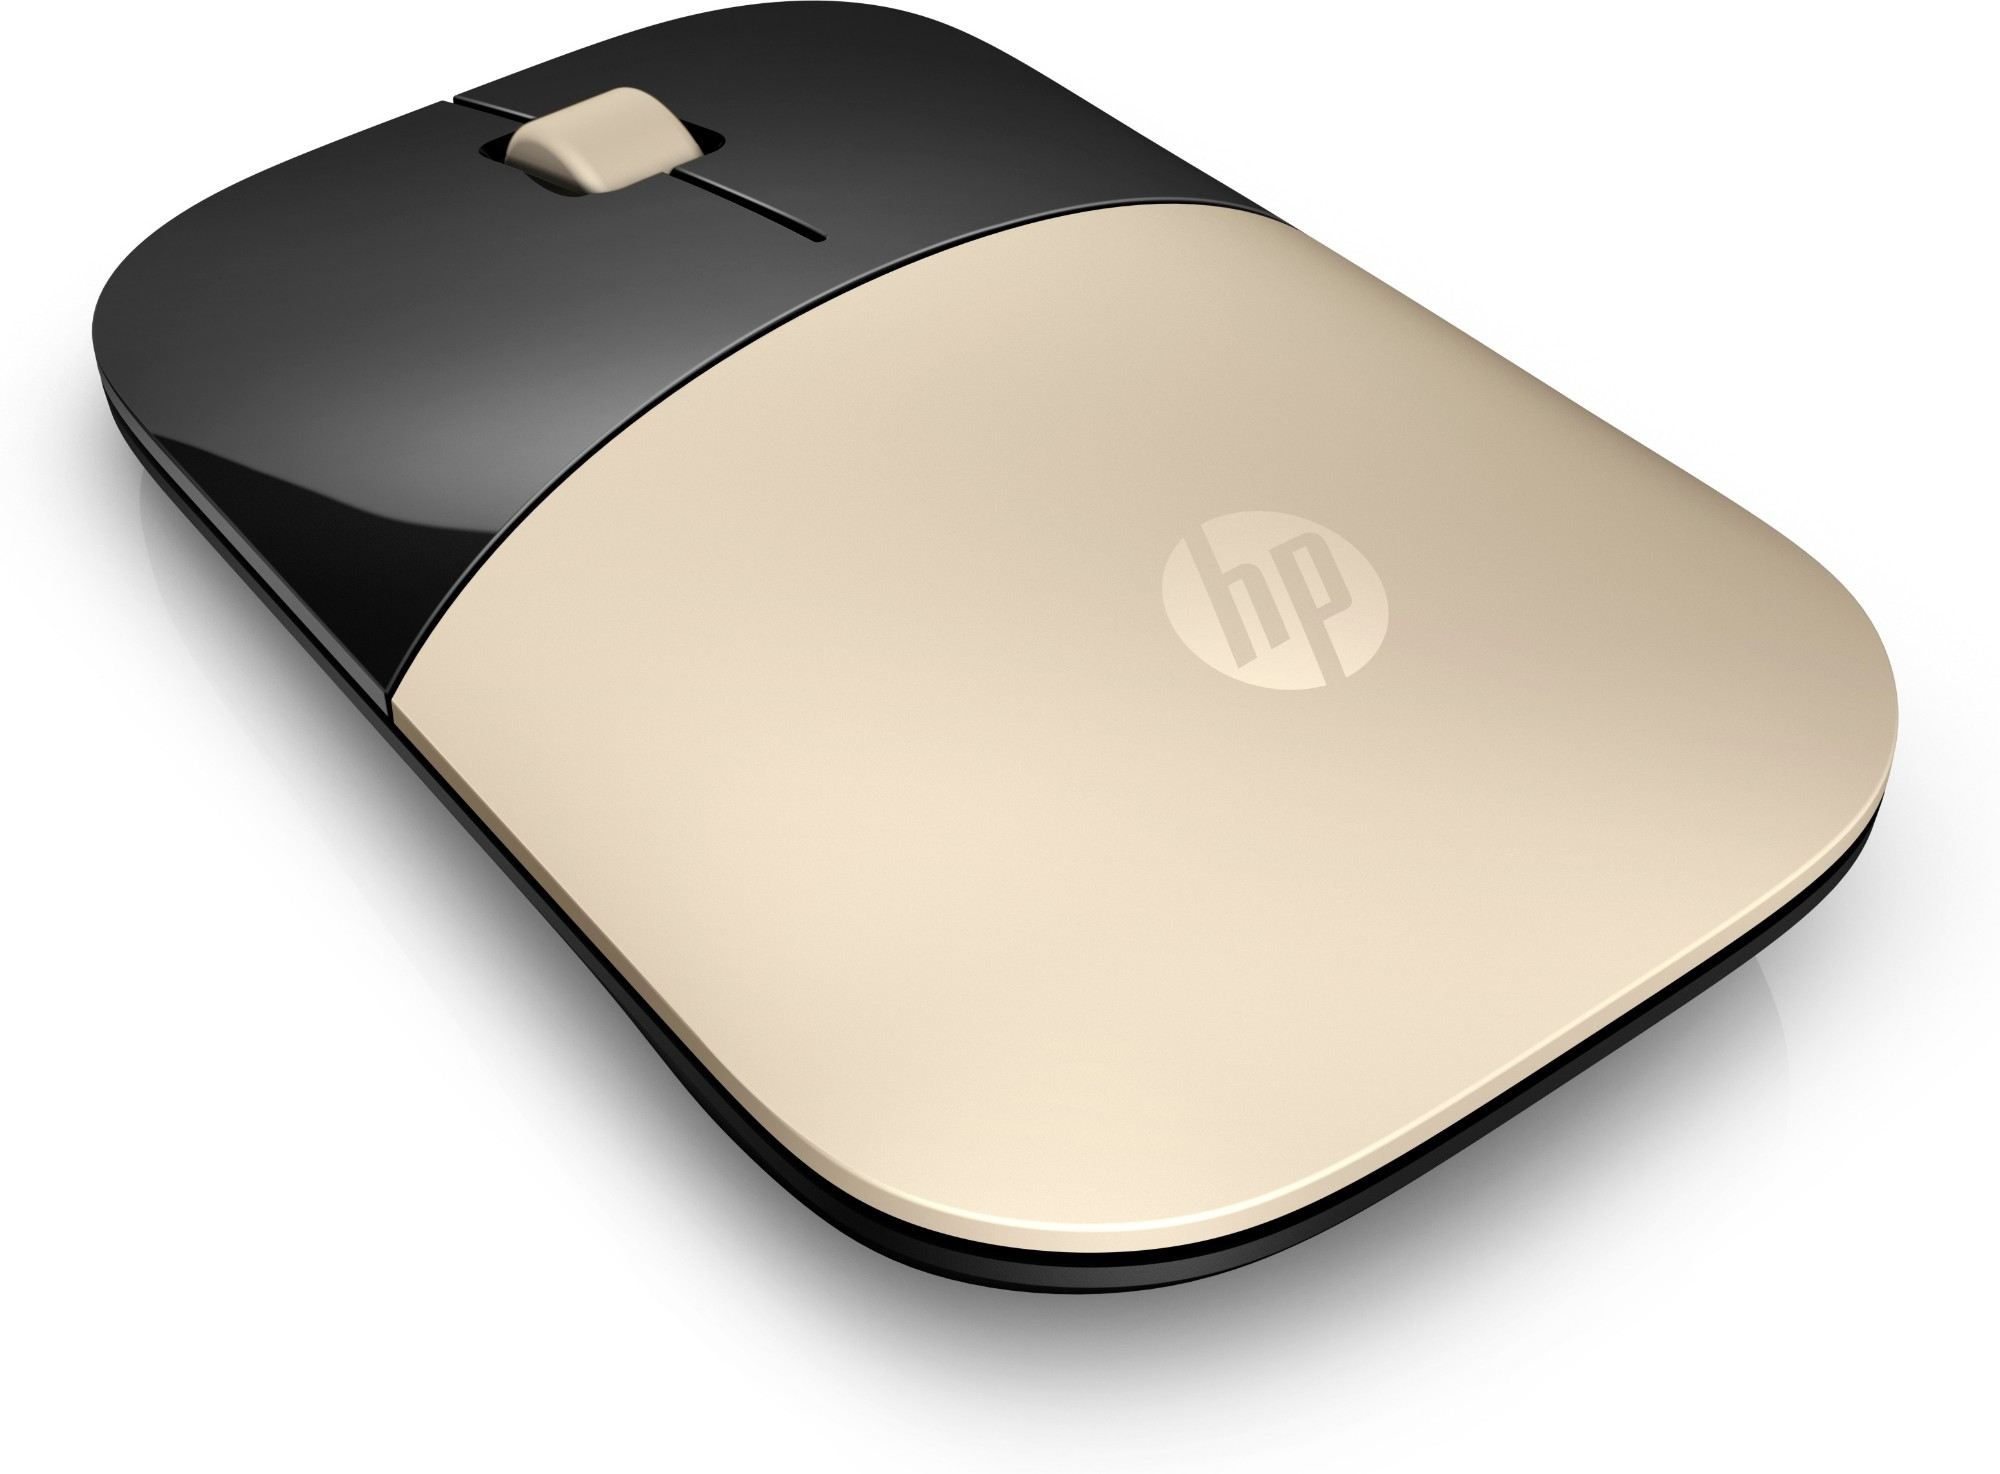 Wireless Mouse Z3700 Gold